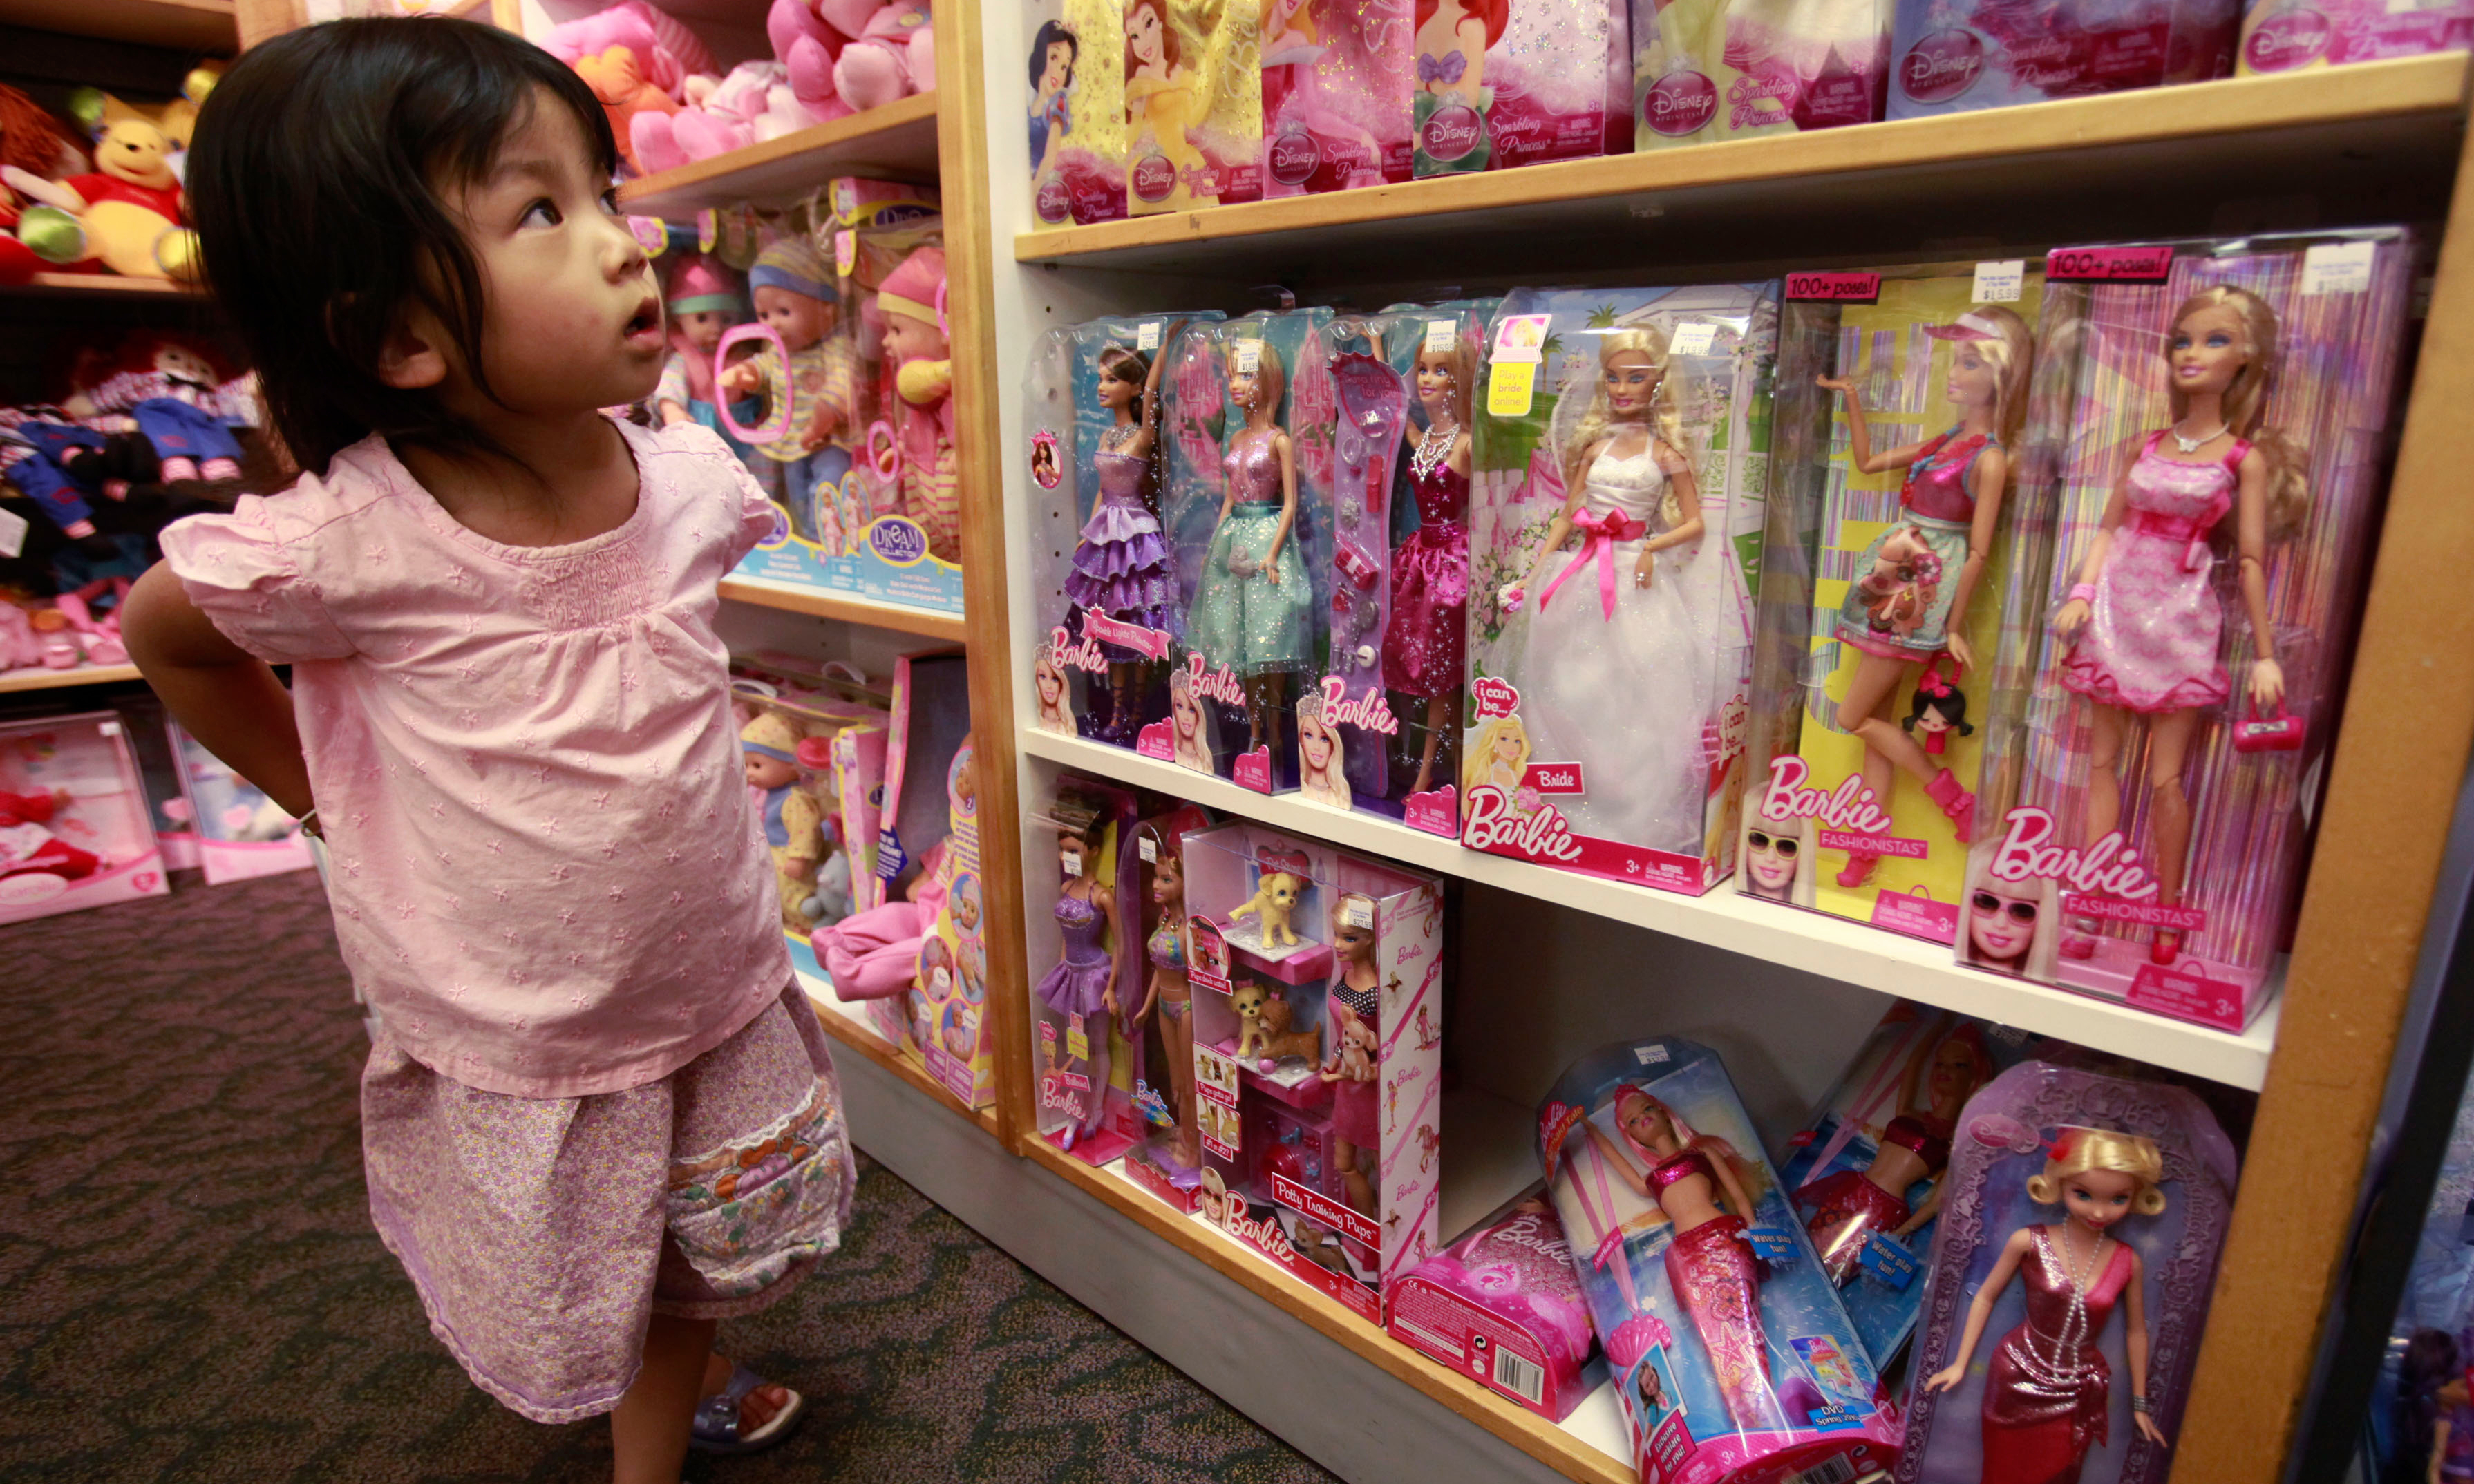 Toys aimed at girls 'steering women away from science careers'